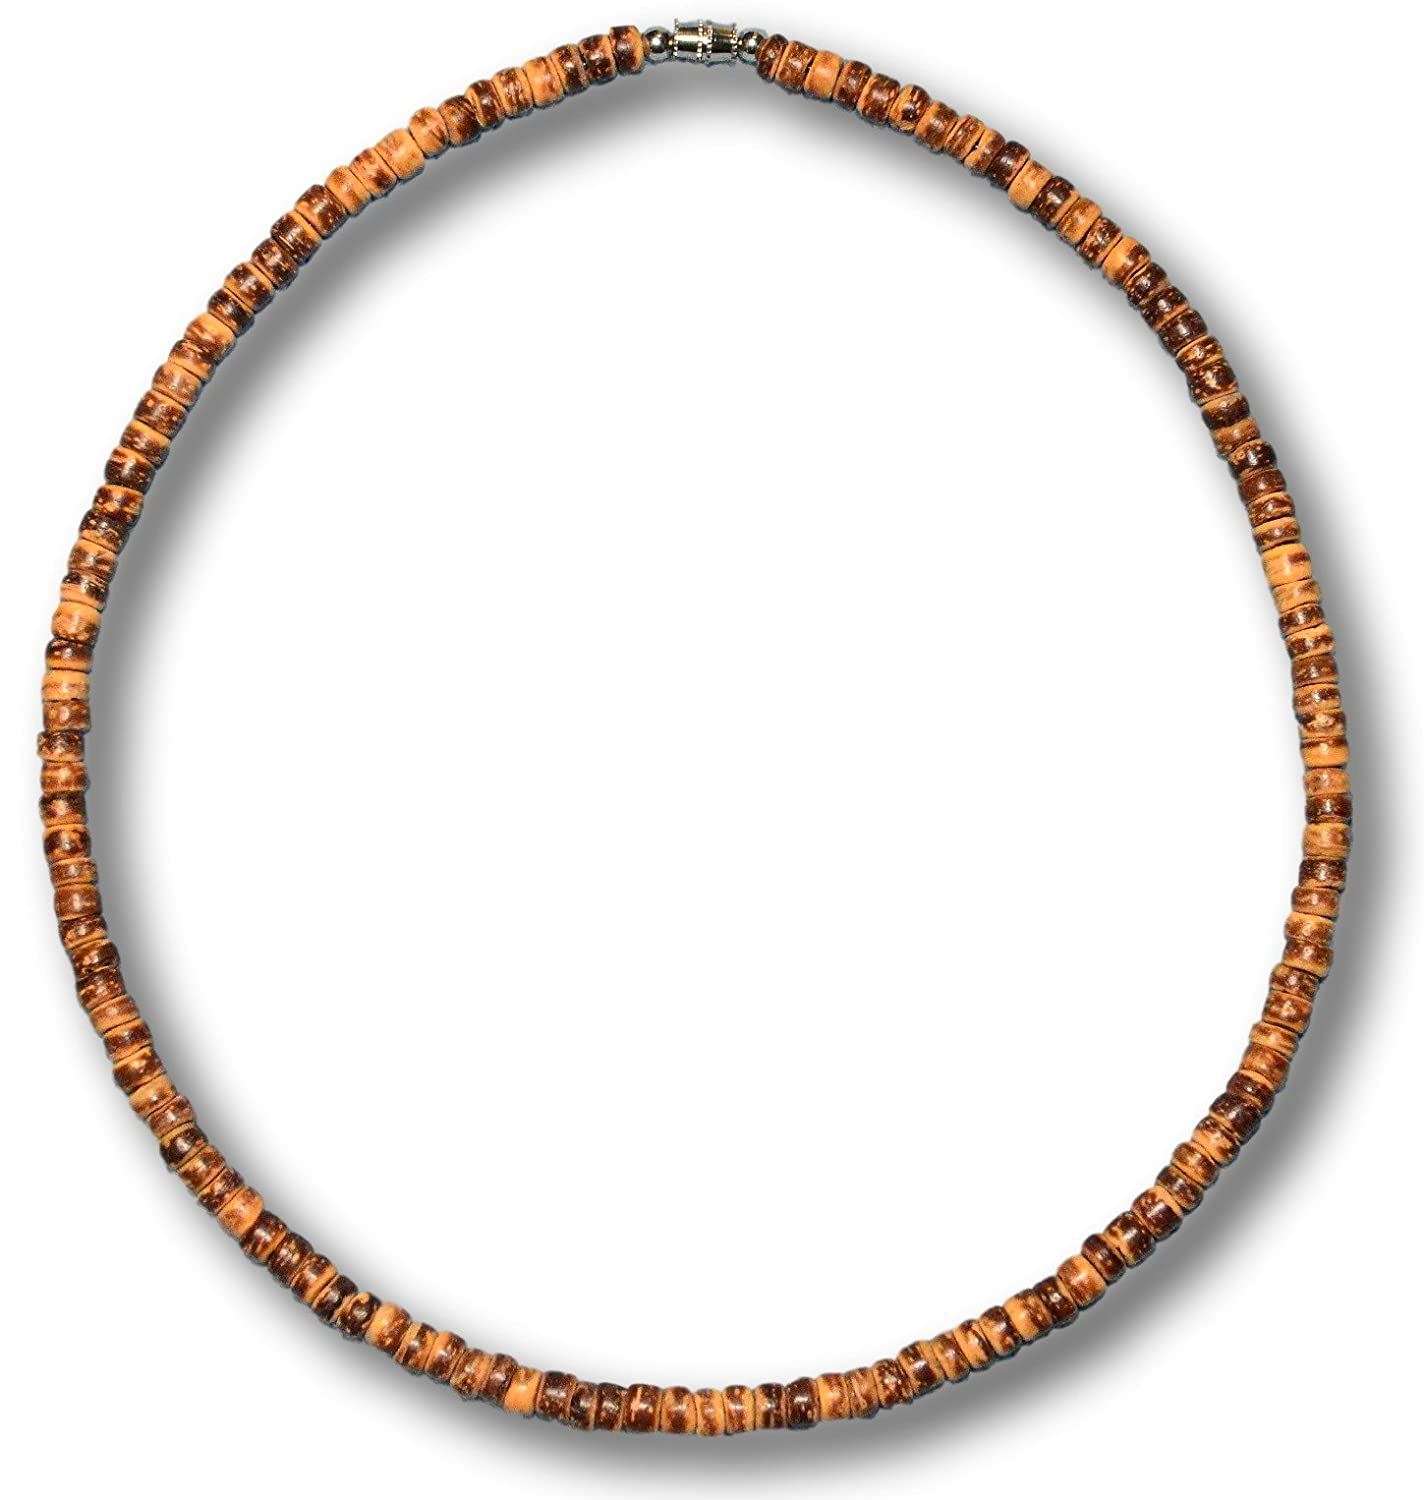 from The Philippines 3//16 Native Treasure Brown Tiger Coco Shell Wood Bead Surfer Necklace 5mm